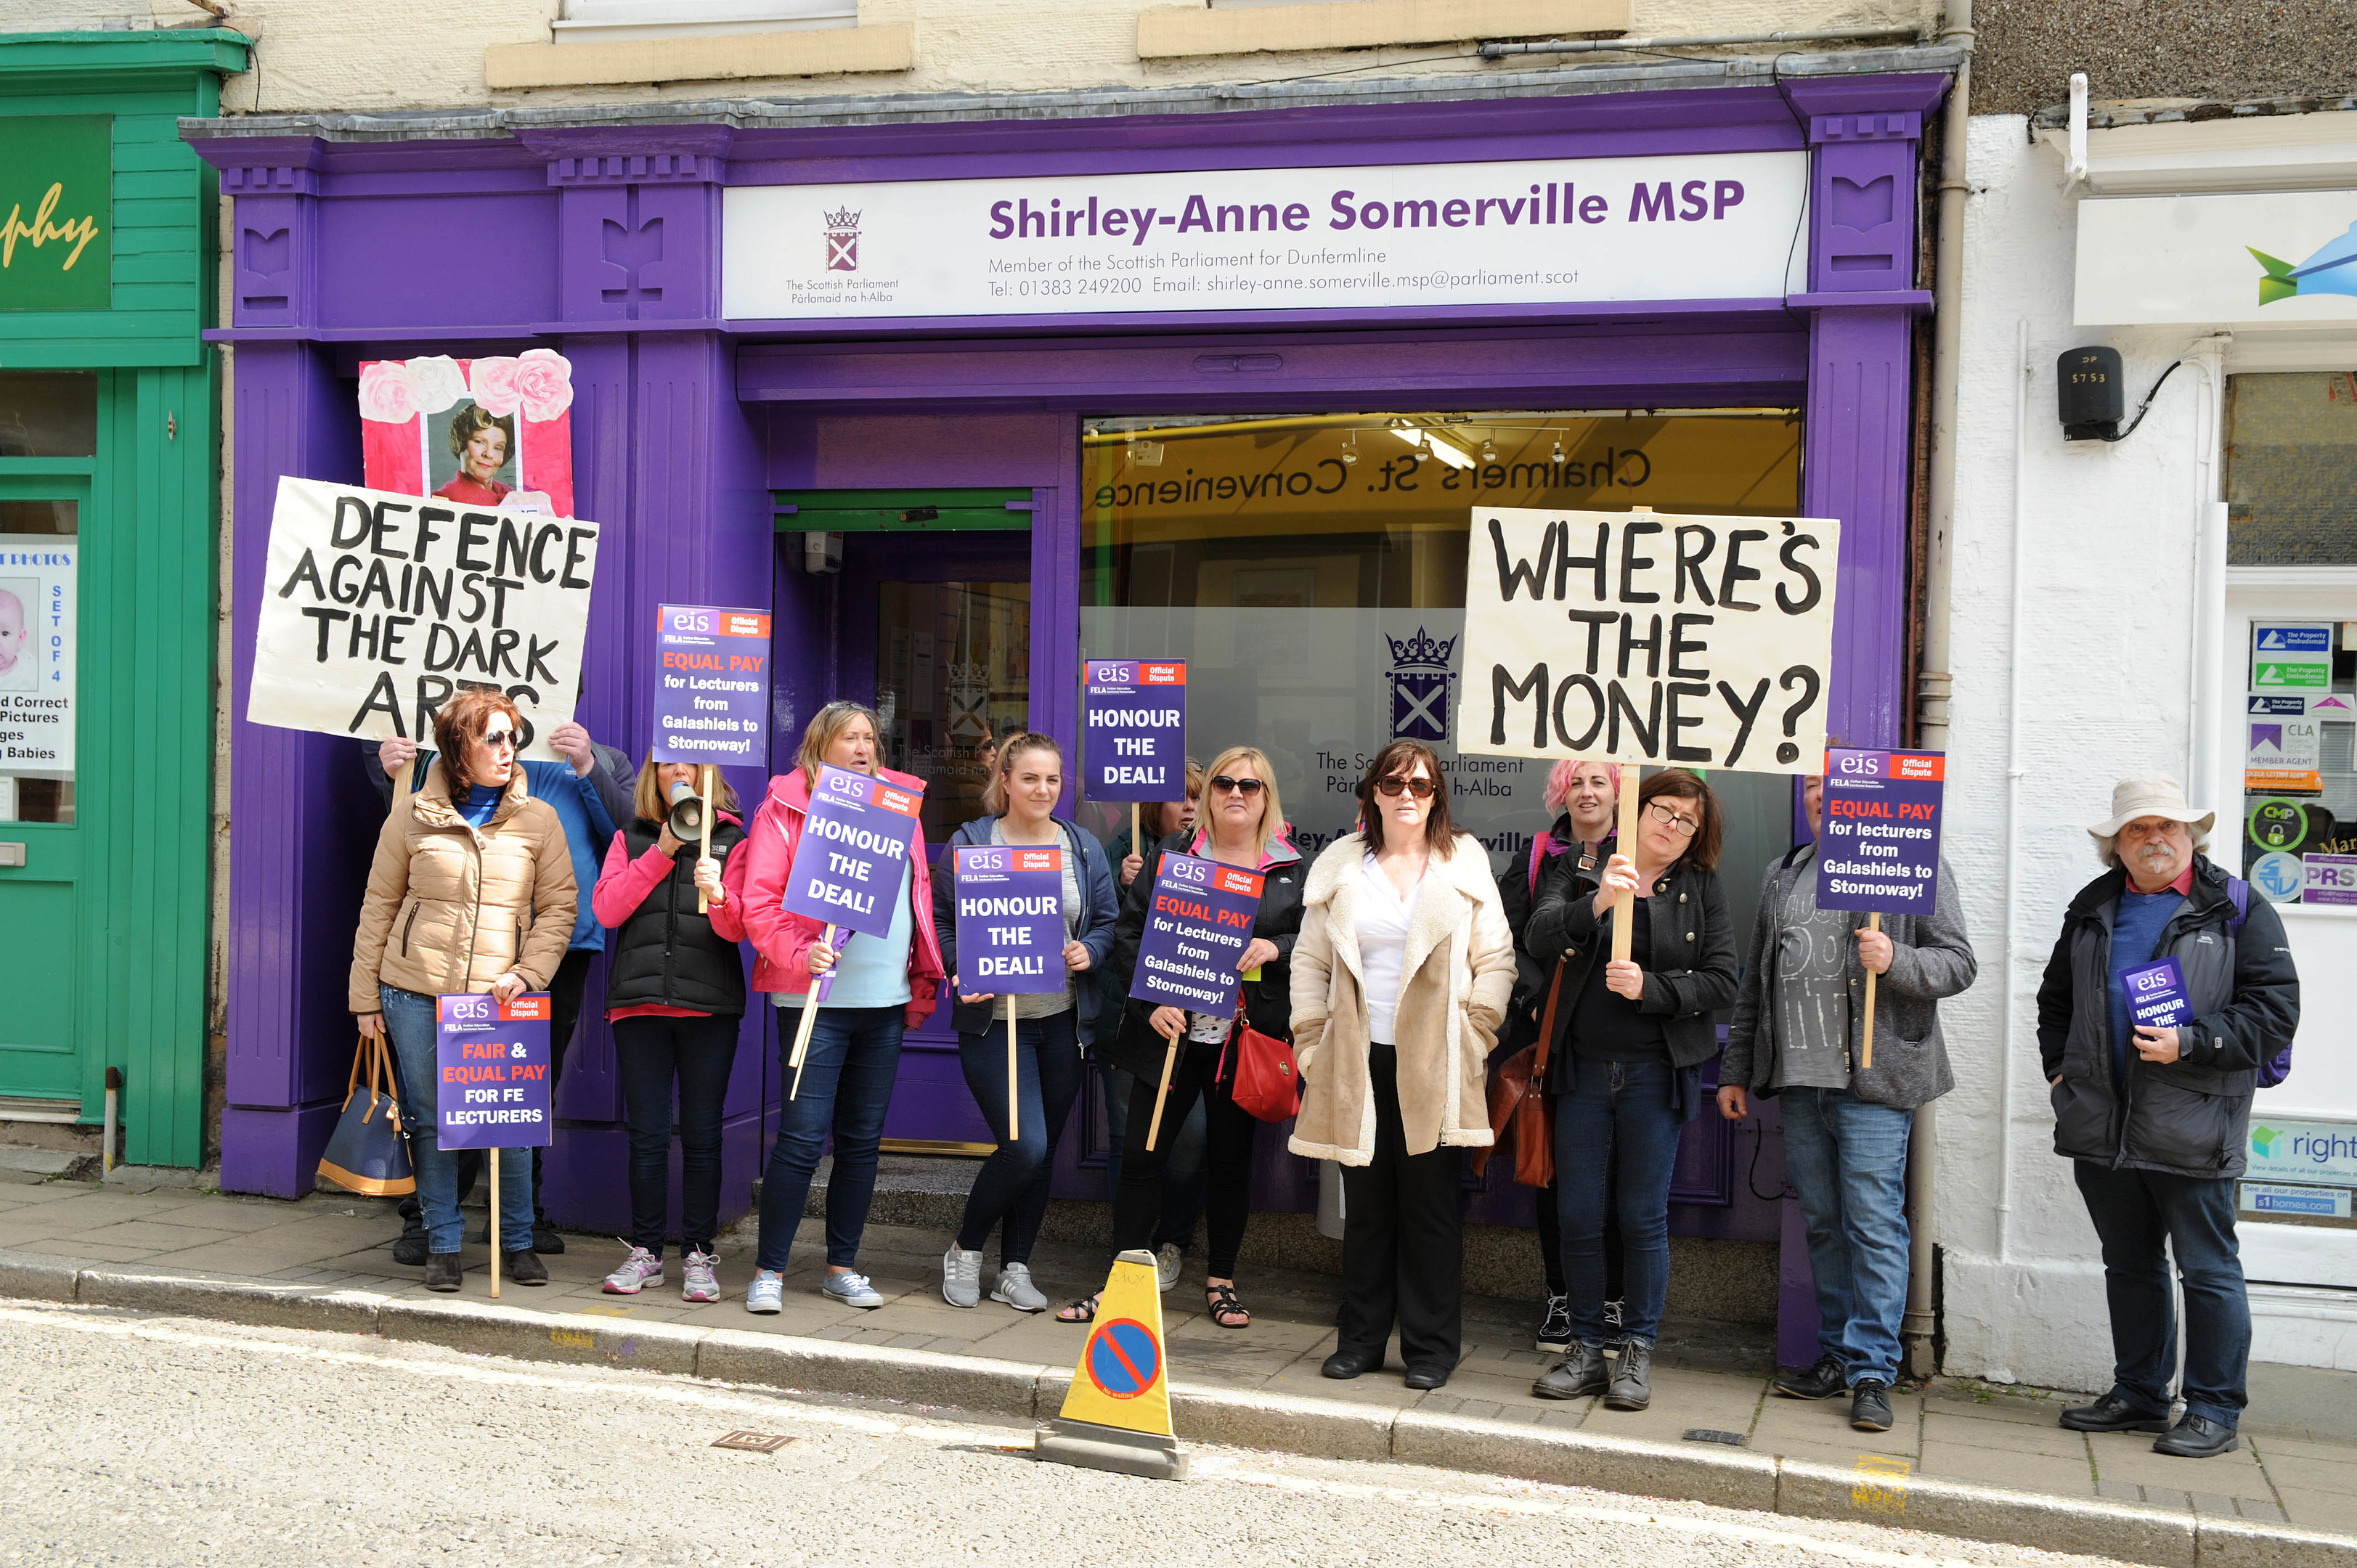 College lecturers demonstrate outside Shirley-Anne Somerville's office  (c) David Wardle